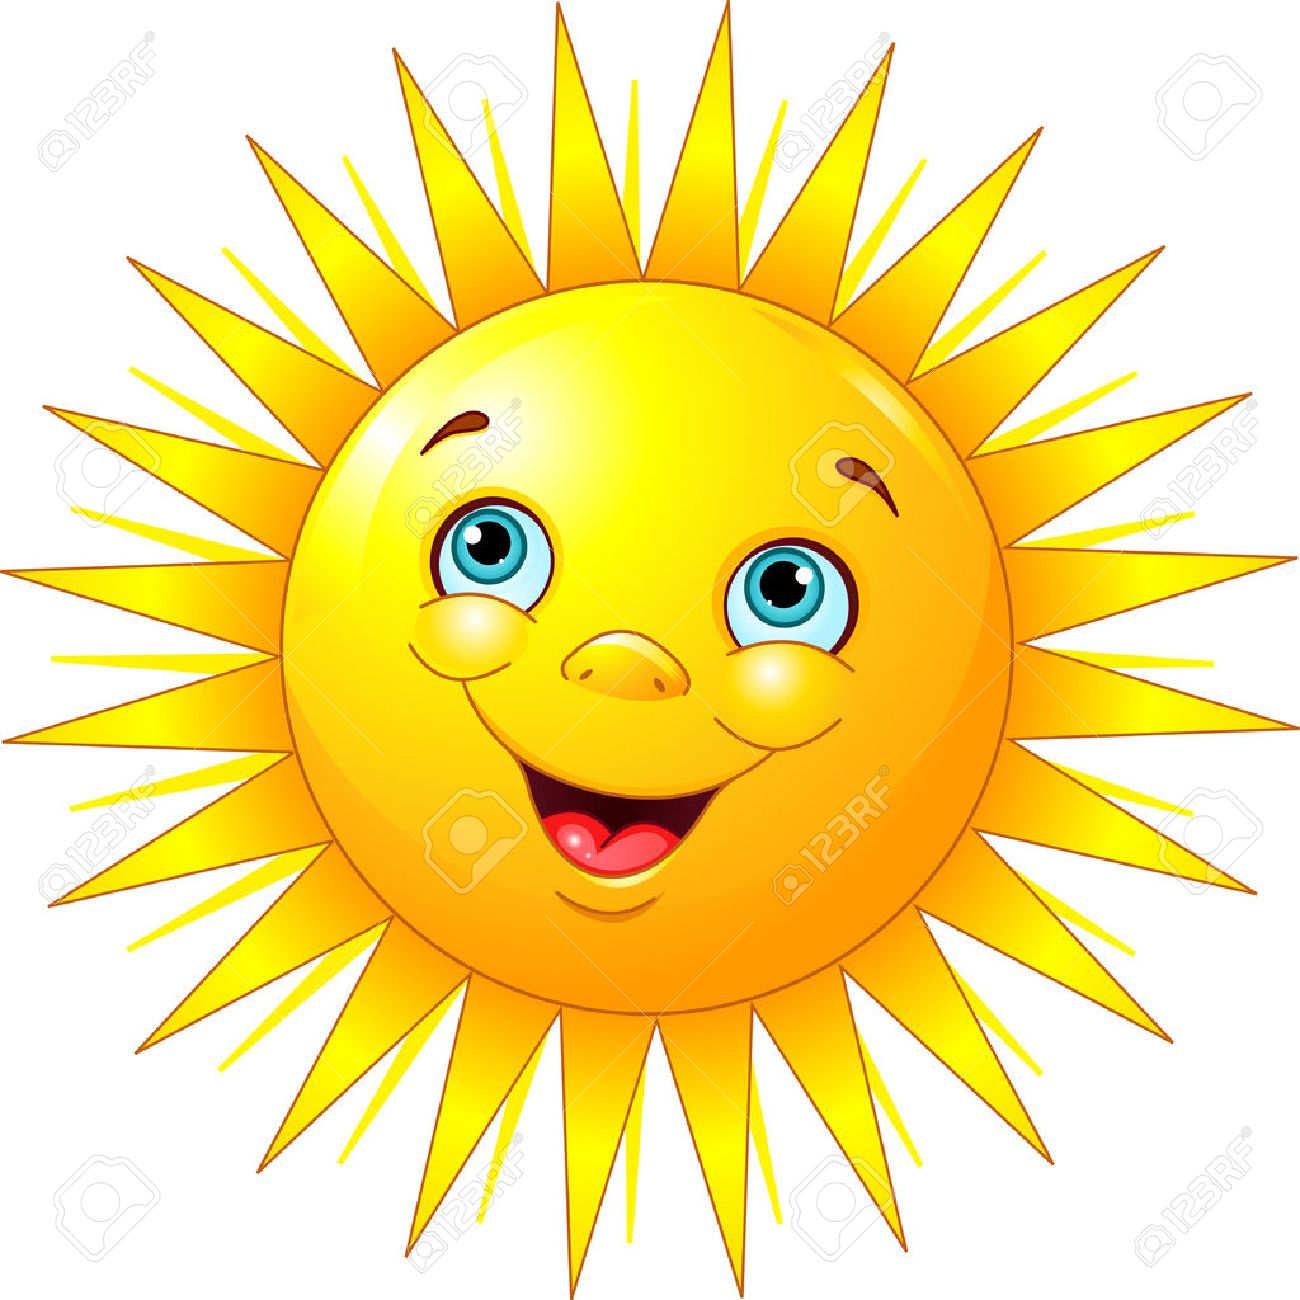 illustration of smiling sun character royalty free cliparts vectors rh 123rf com  smiling sun clip art images